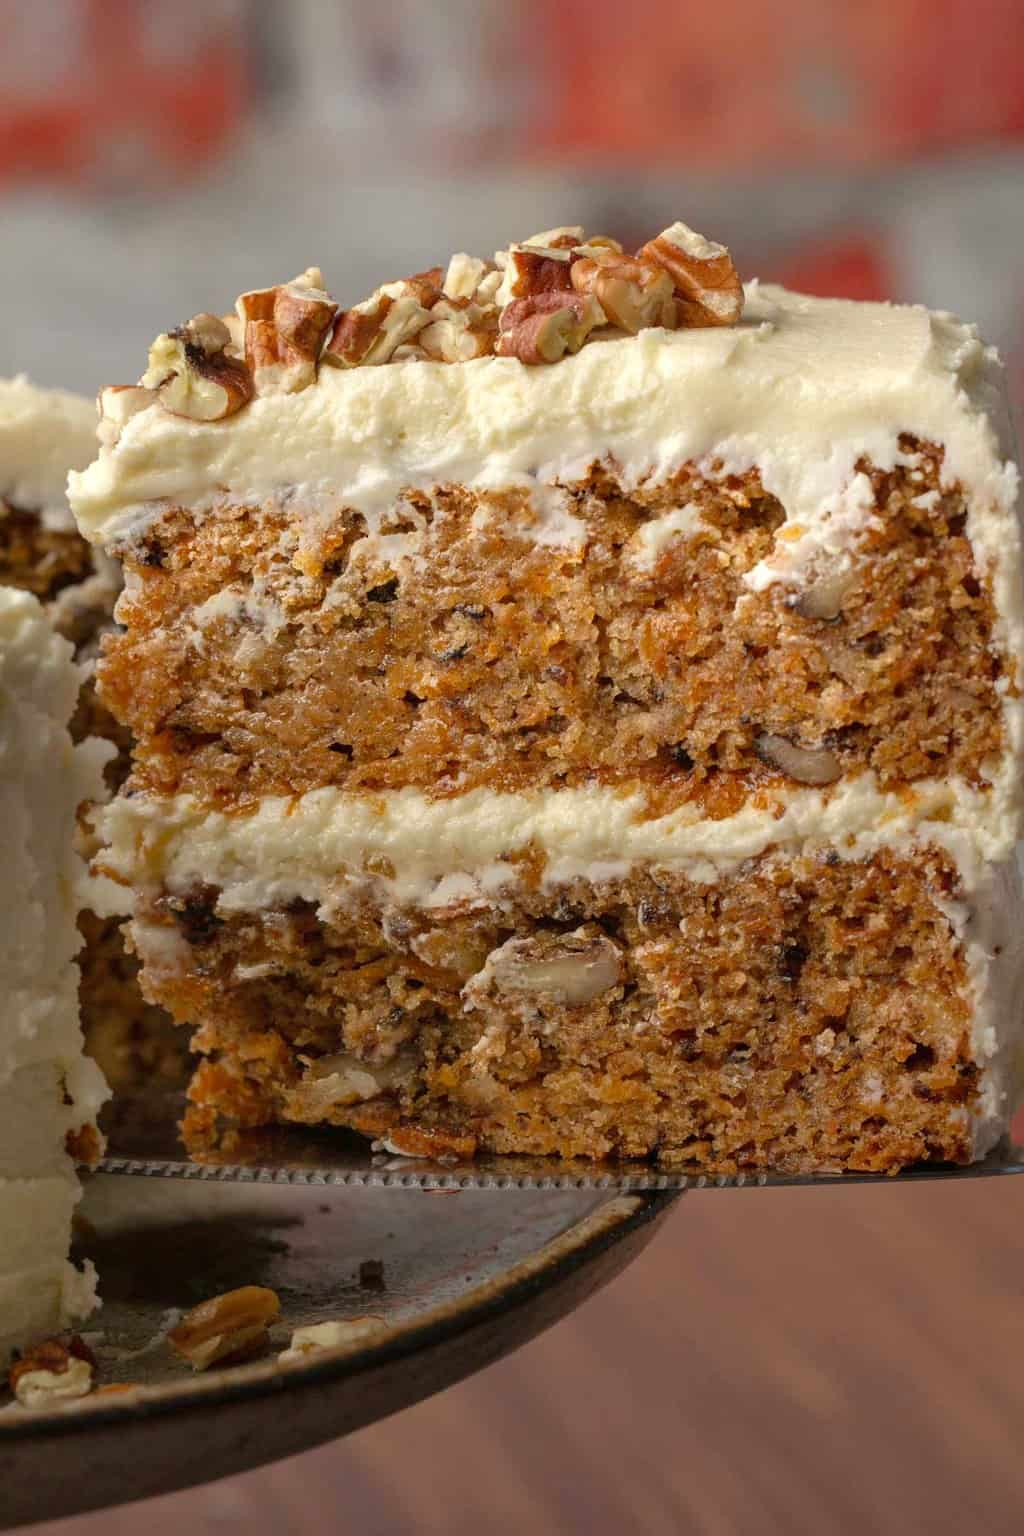 Slice of vegan gluten free carrot cake on a cake lifter.